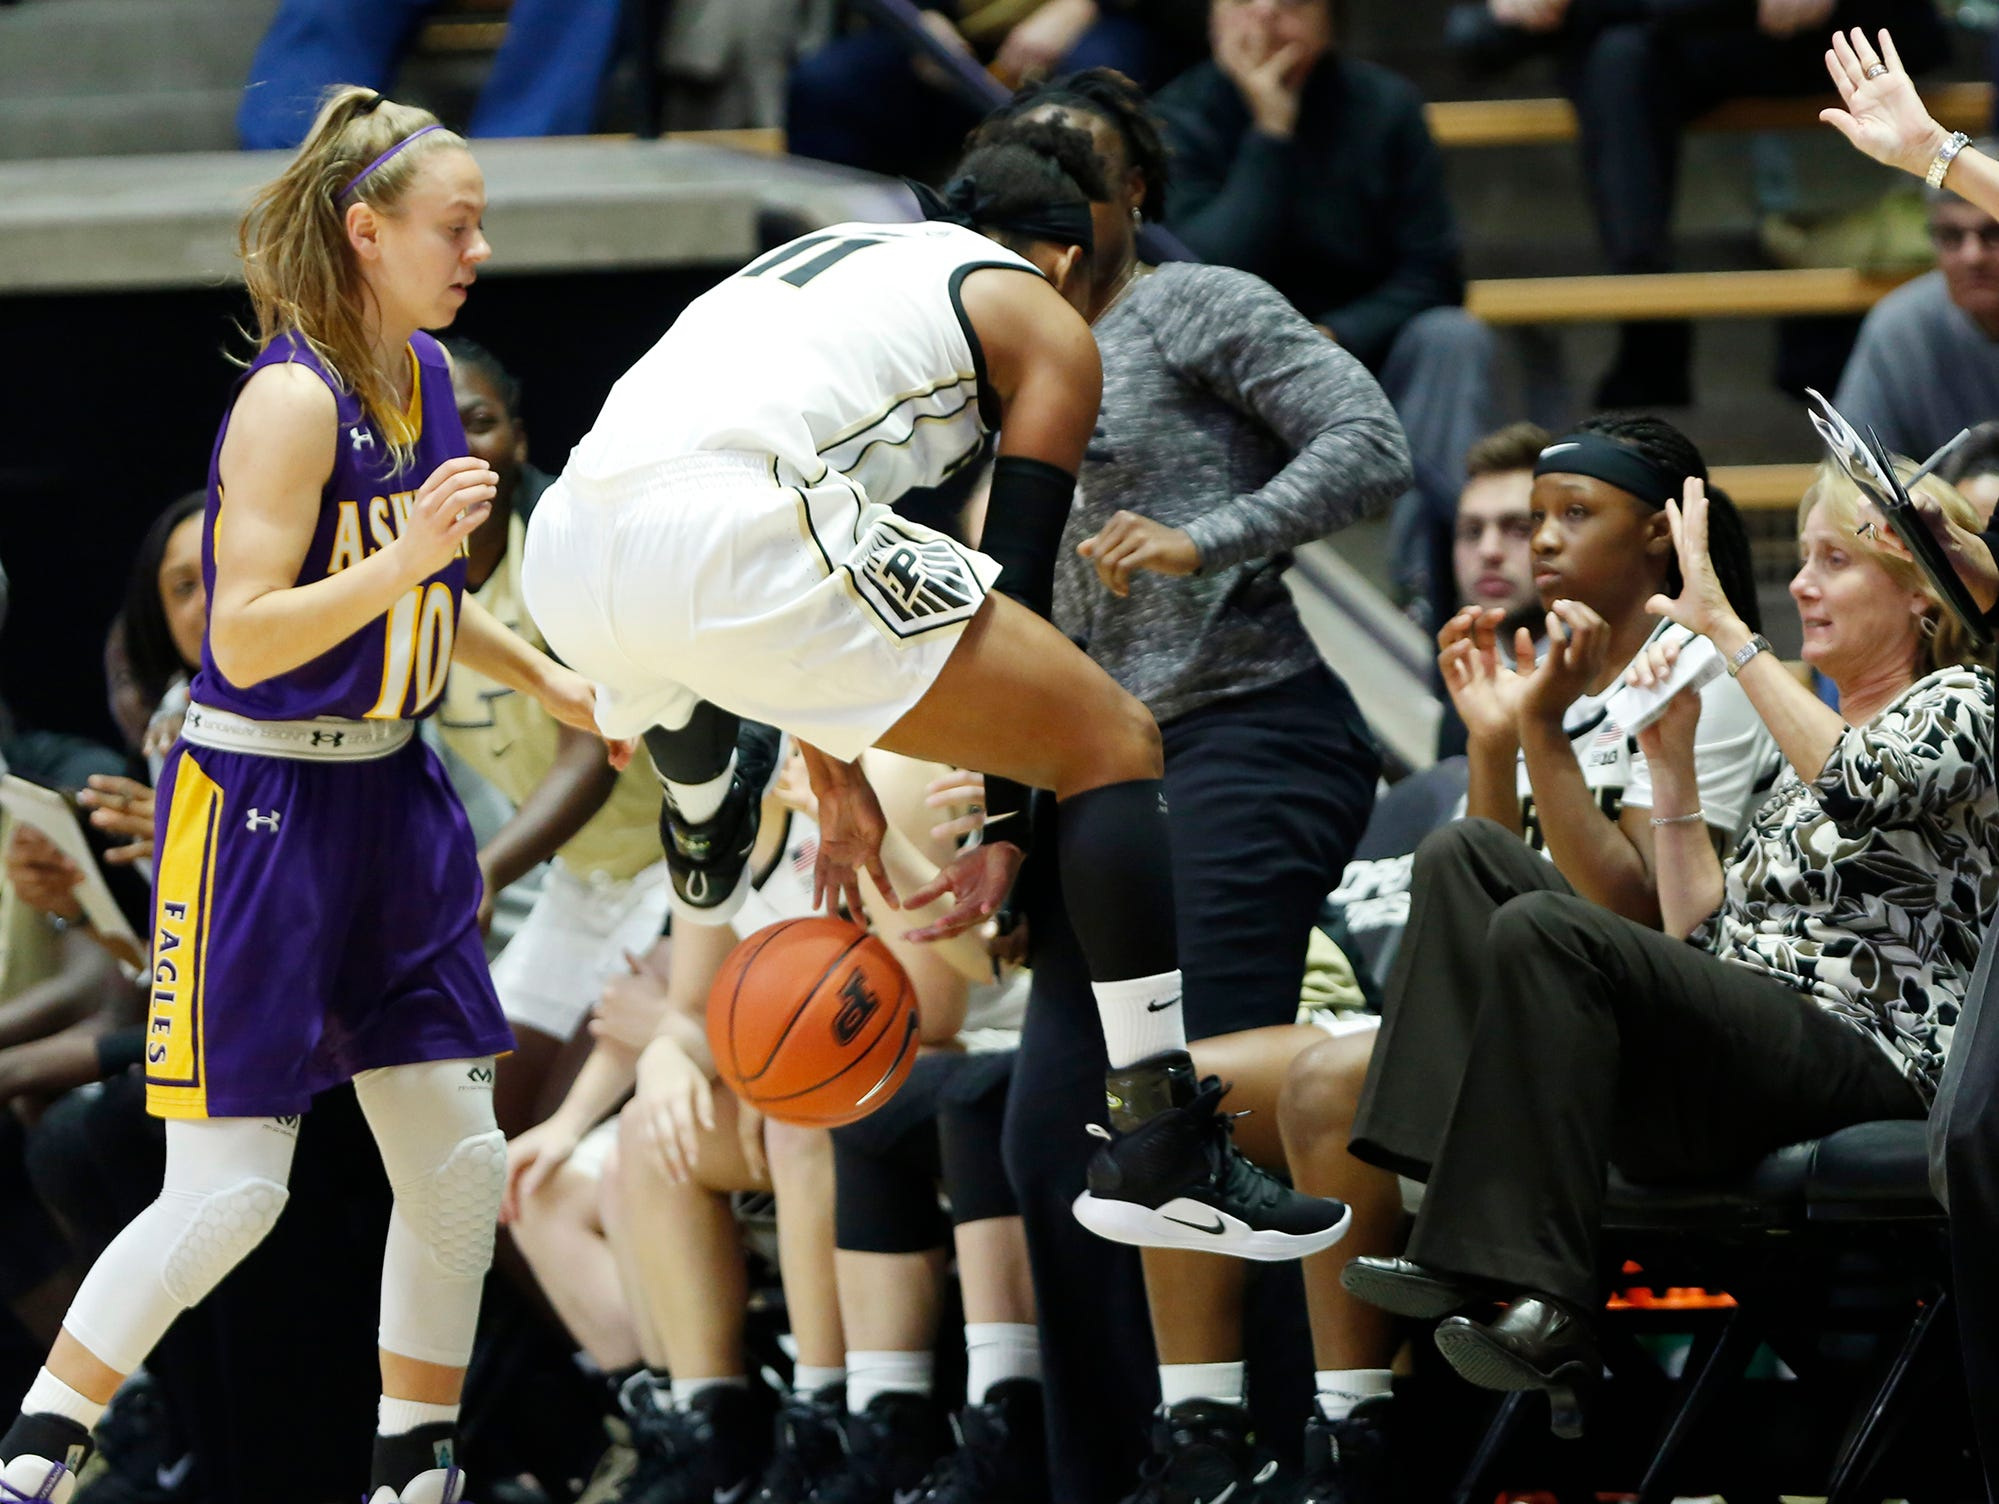 Dominique Oden throws a pass backwards between her legs before the ball goes out of bounds against Ashland Sunday, November 4, 2018, at Mackey Arena. Purdue defeated Ashland 85-69.